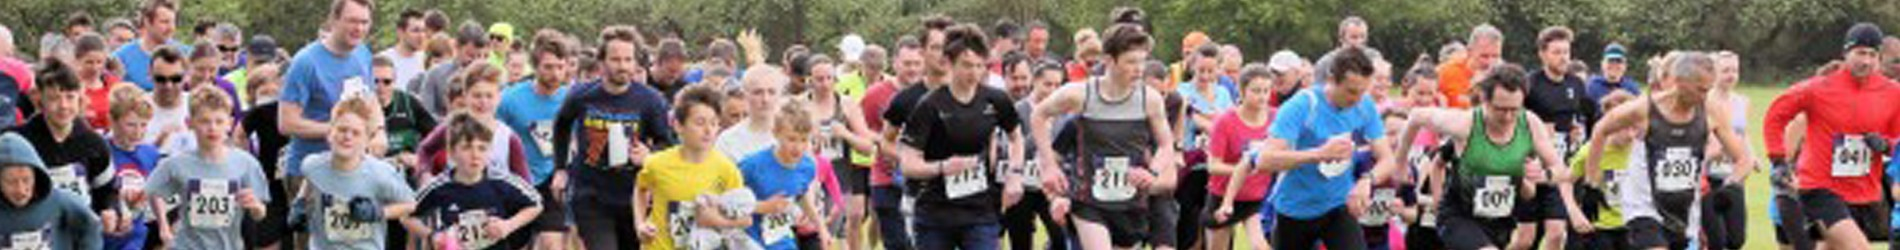 Very Late 2020 Virtual Cottenham 7k Fun Run:  May 1st - 3rd